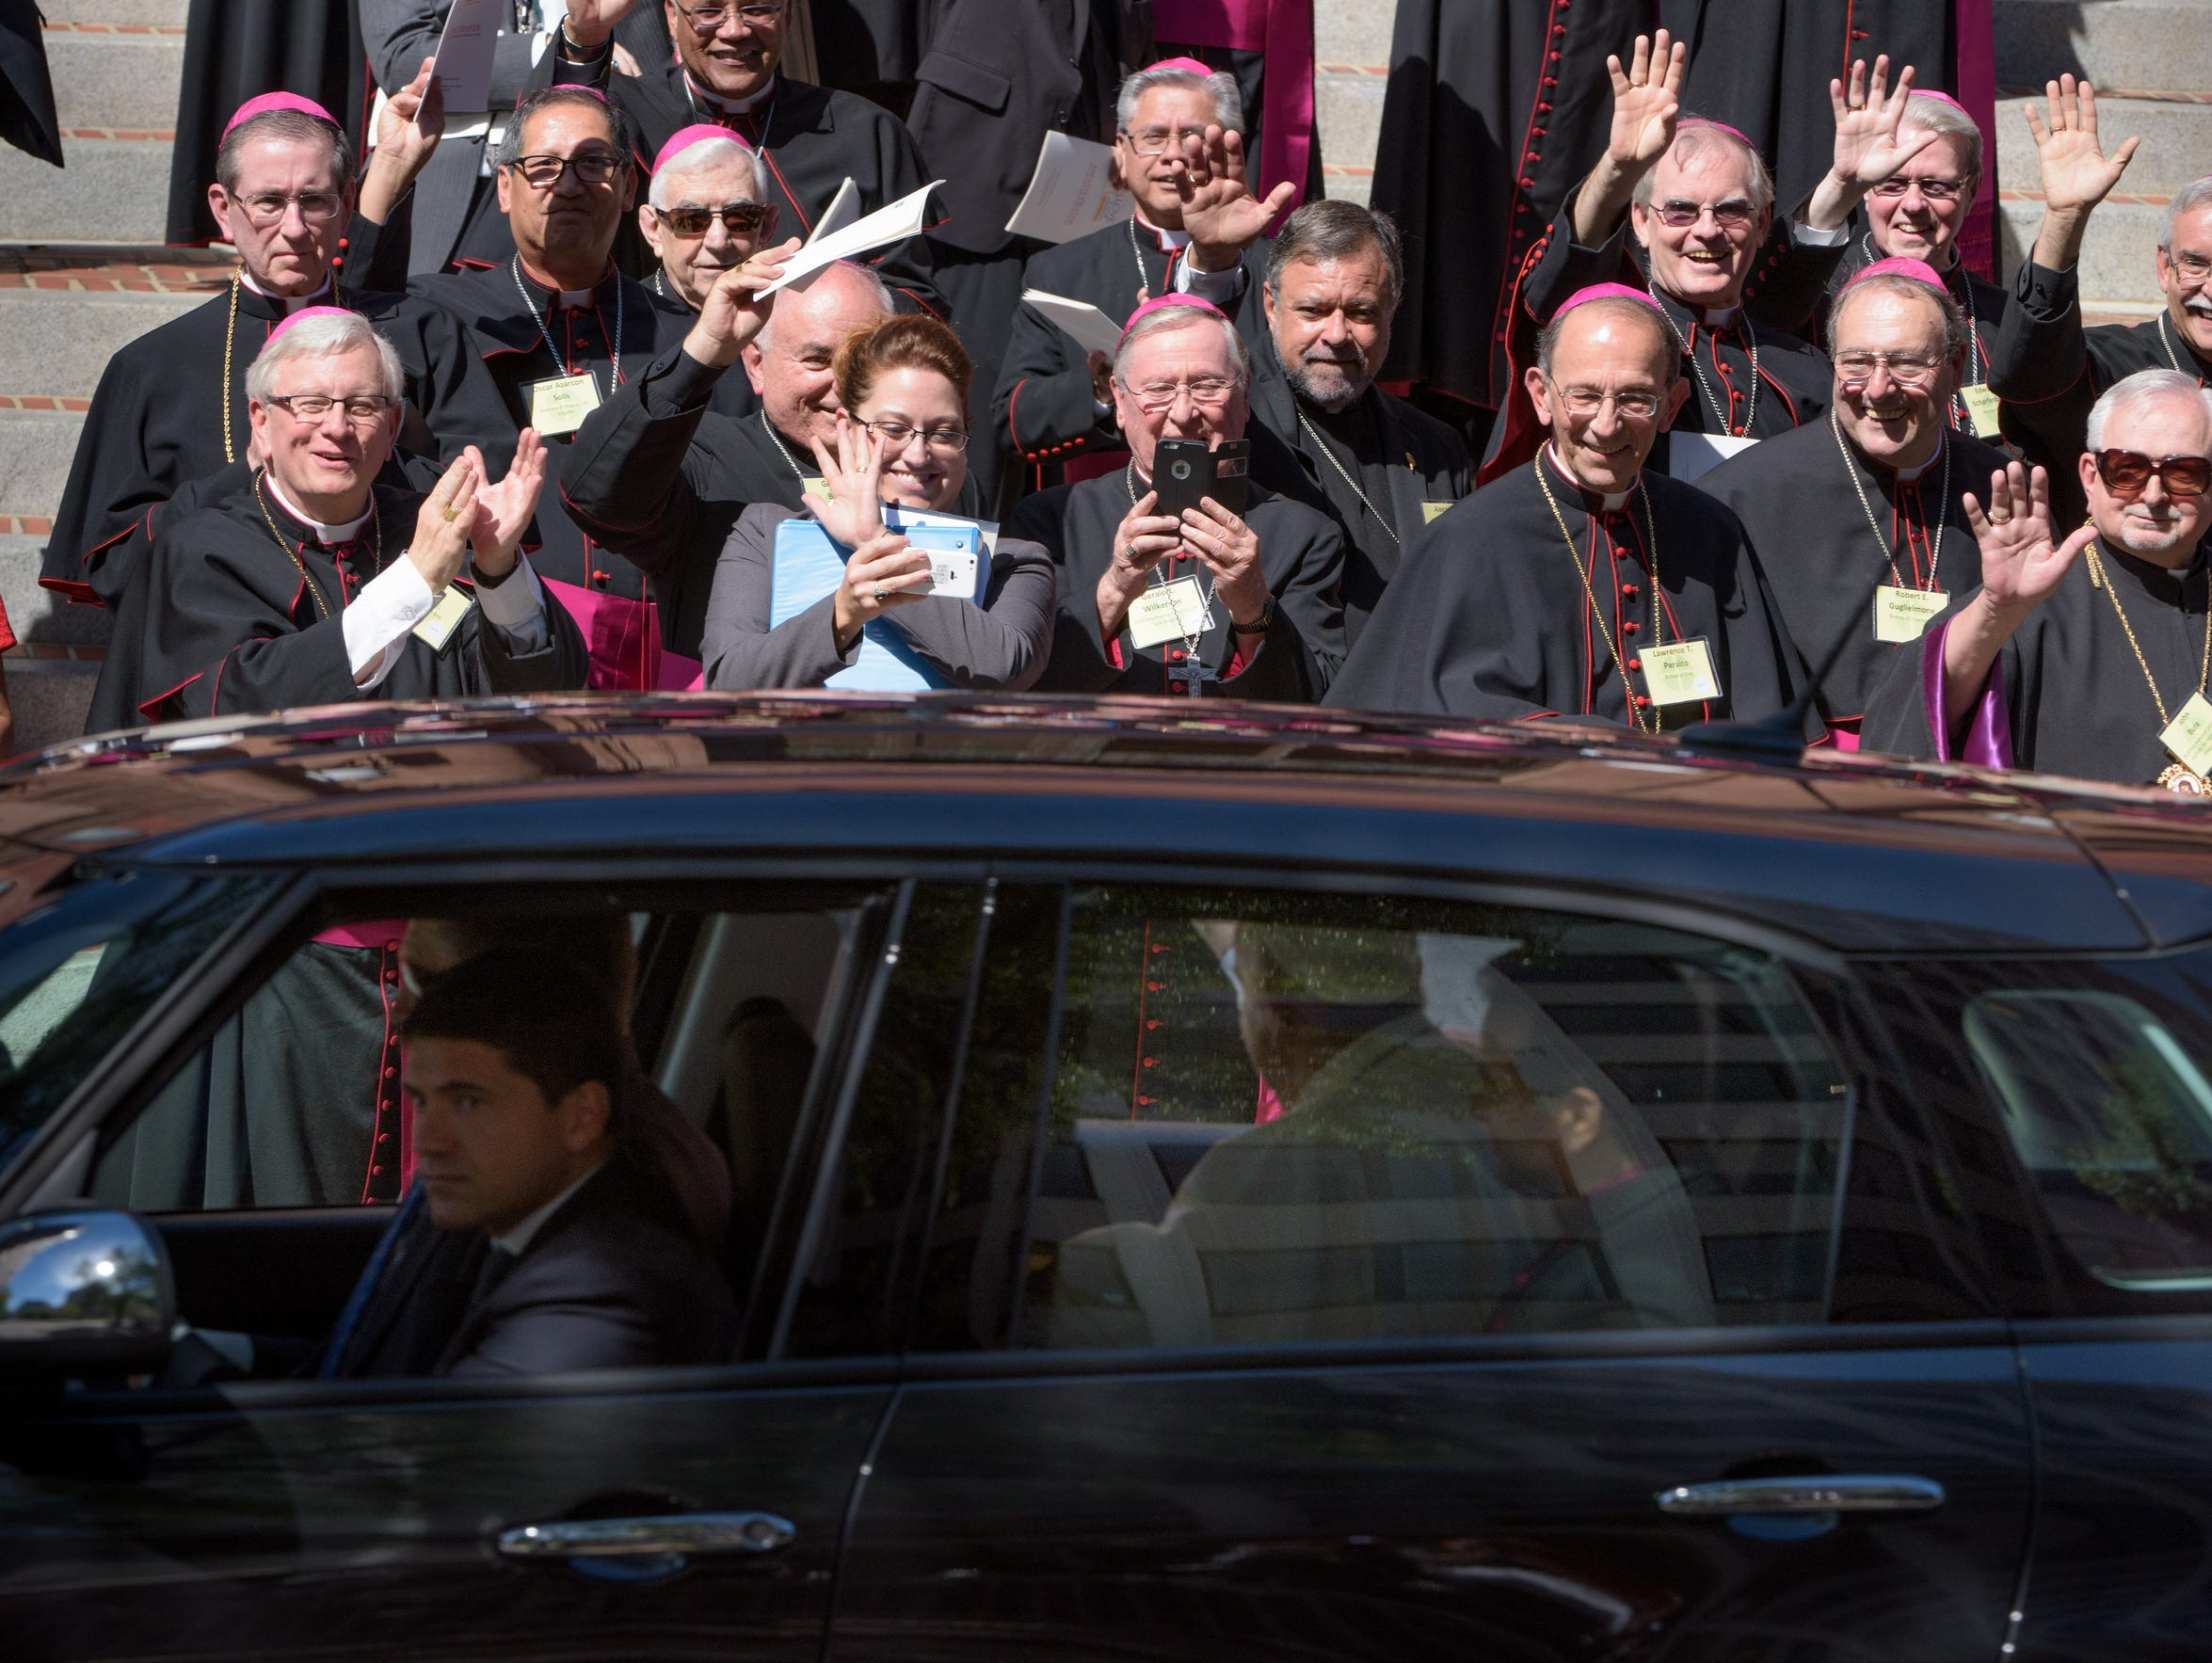 Green Bay Bishop David Ricken, front left, and others